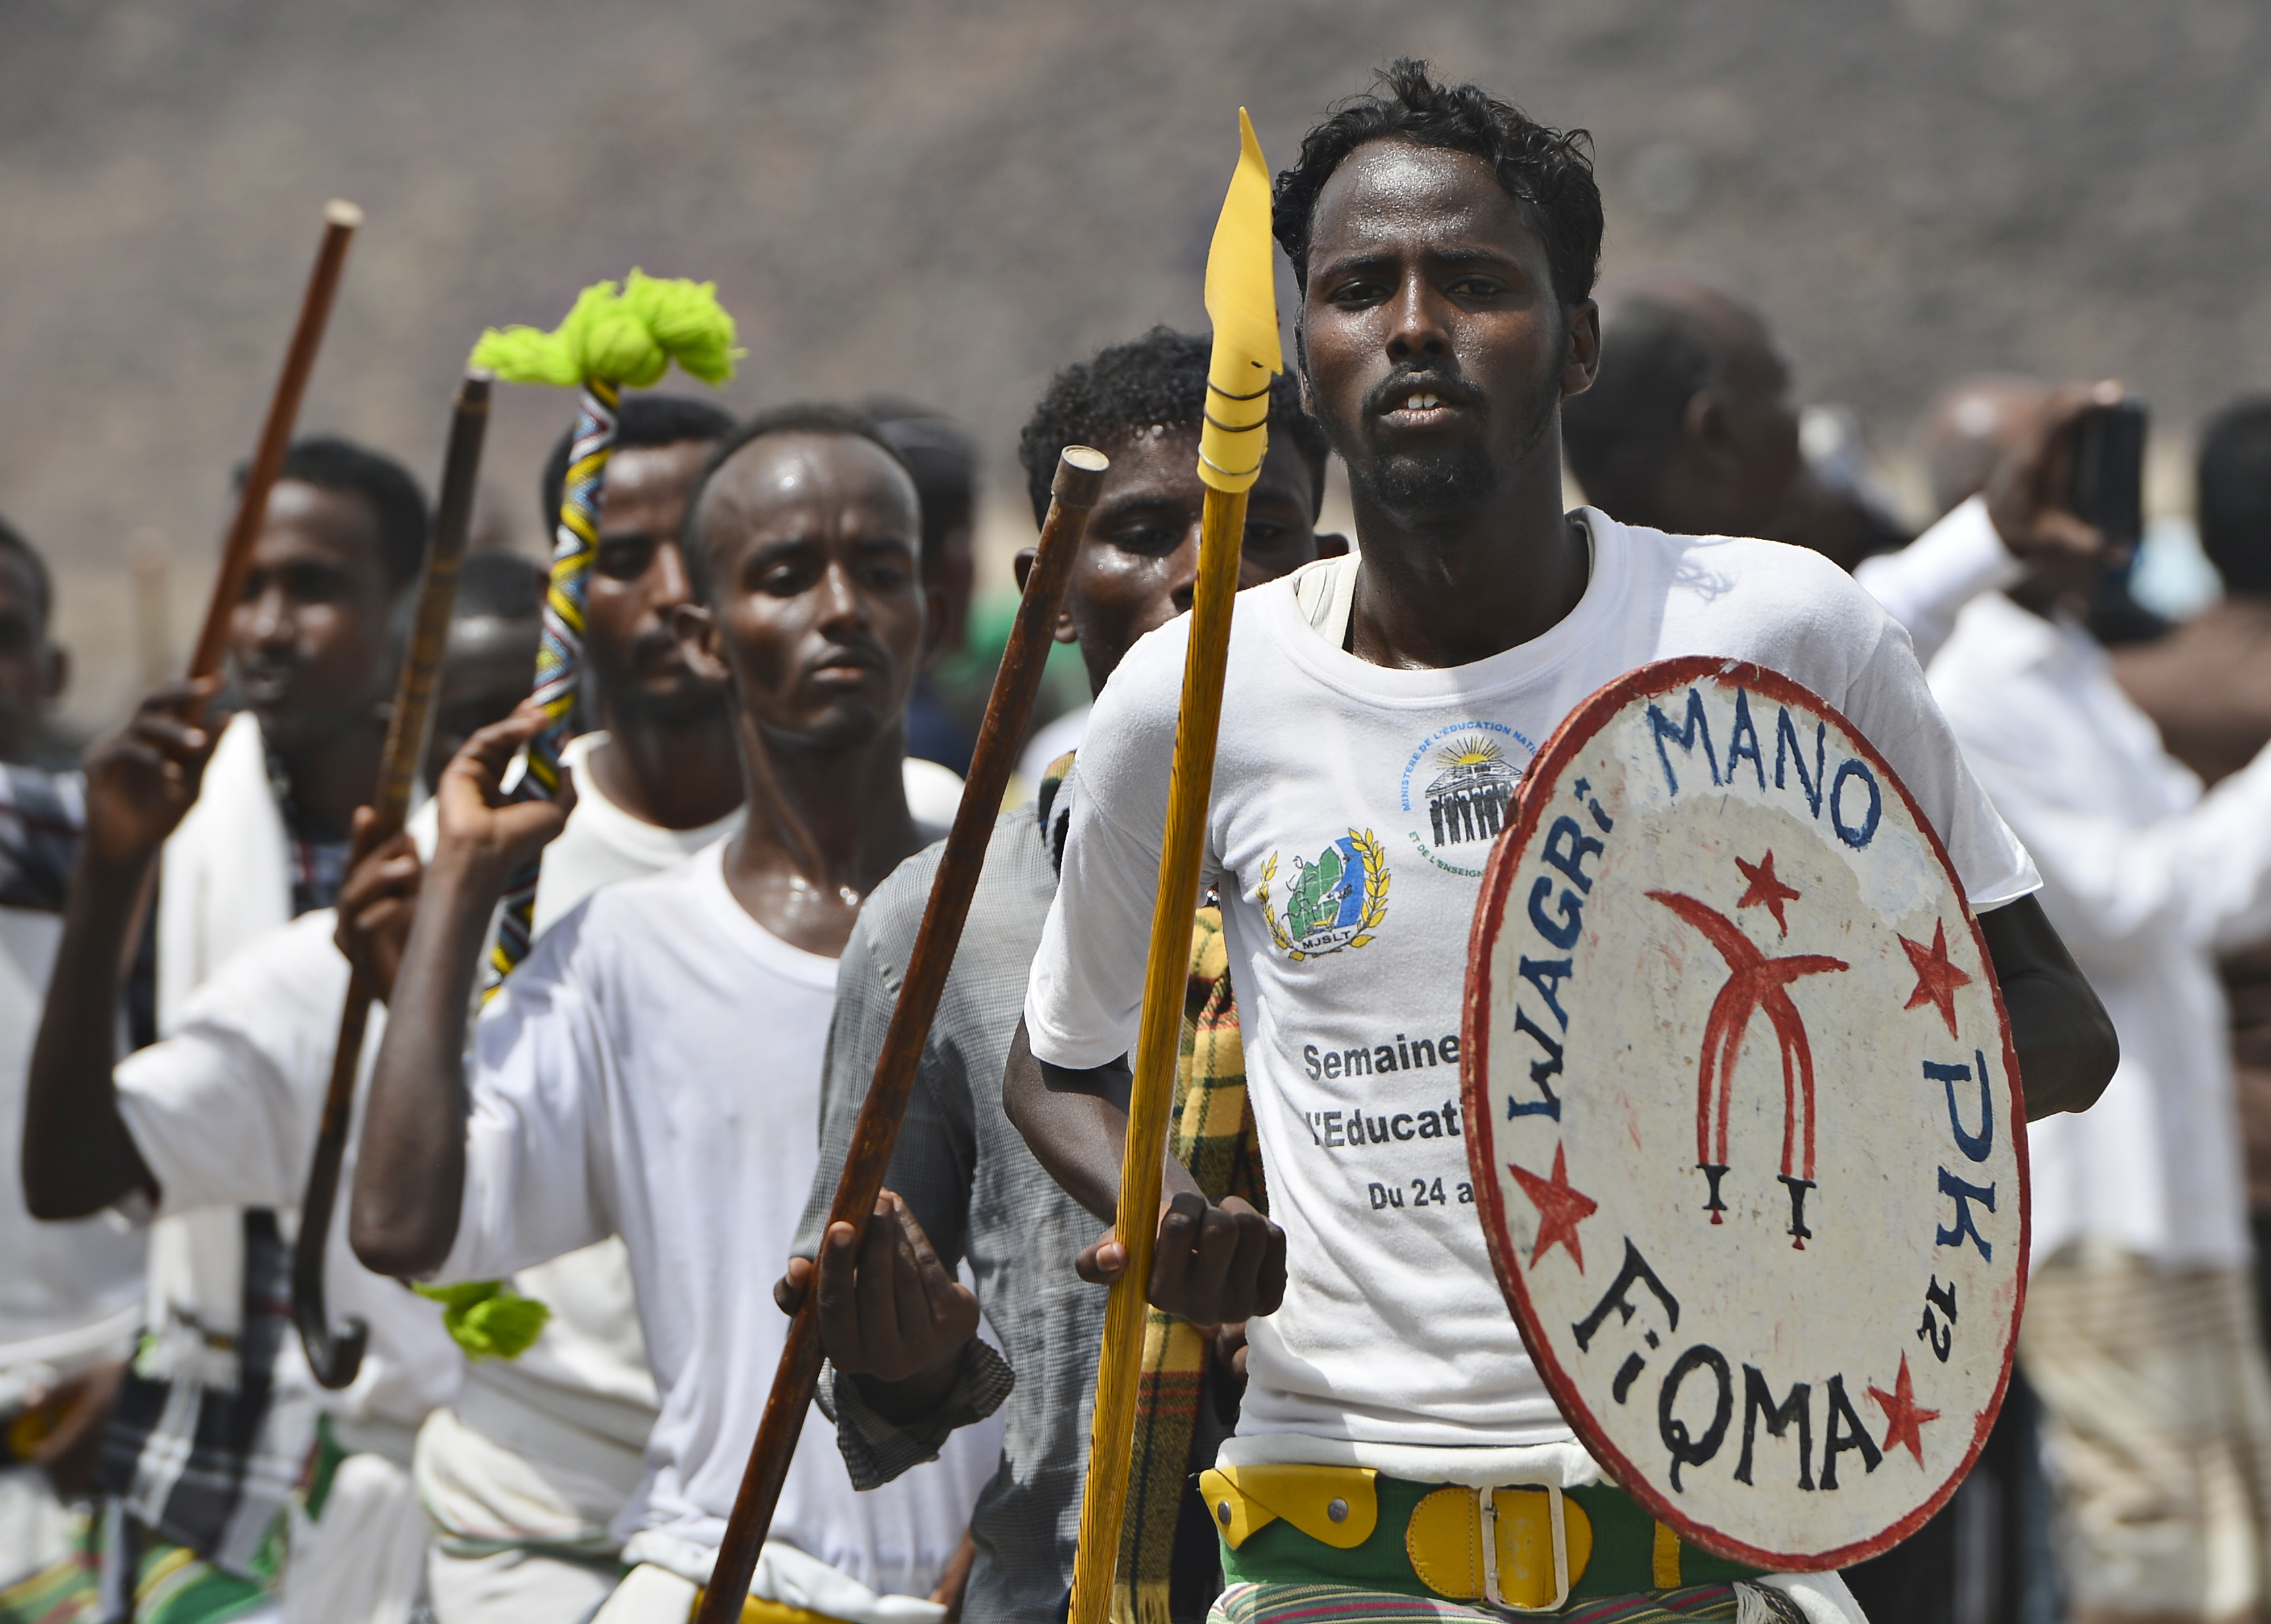 Djiboutian men march with spears and shield during the 21st Induction Ceremony of the Sultan of Gobaad in Dikhil, Djibouti, May 22, 2015. Afar and Issa people sang and danced in traditional apparel to showcase the culture's roots. (U.S. Air Force photo by Senior Airman Nesha Humes)